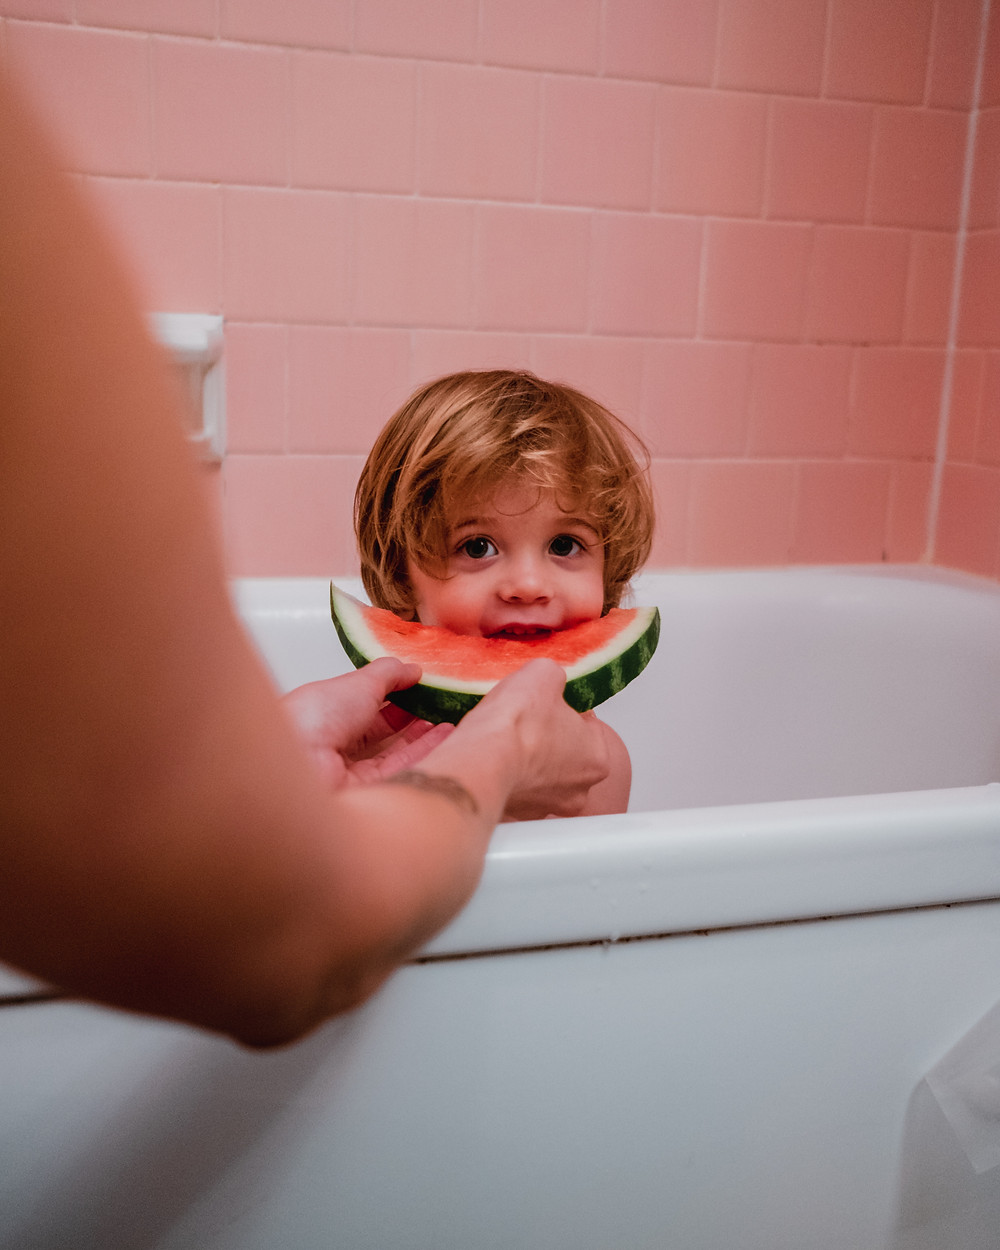 A child eating watermelon in the bath.